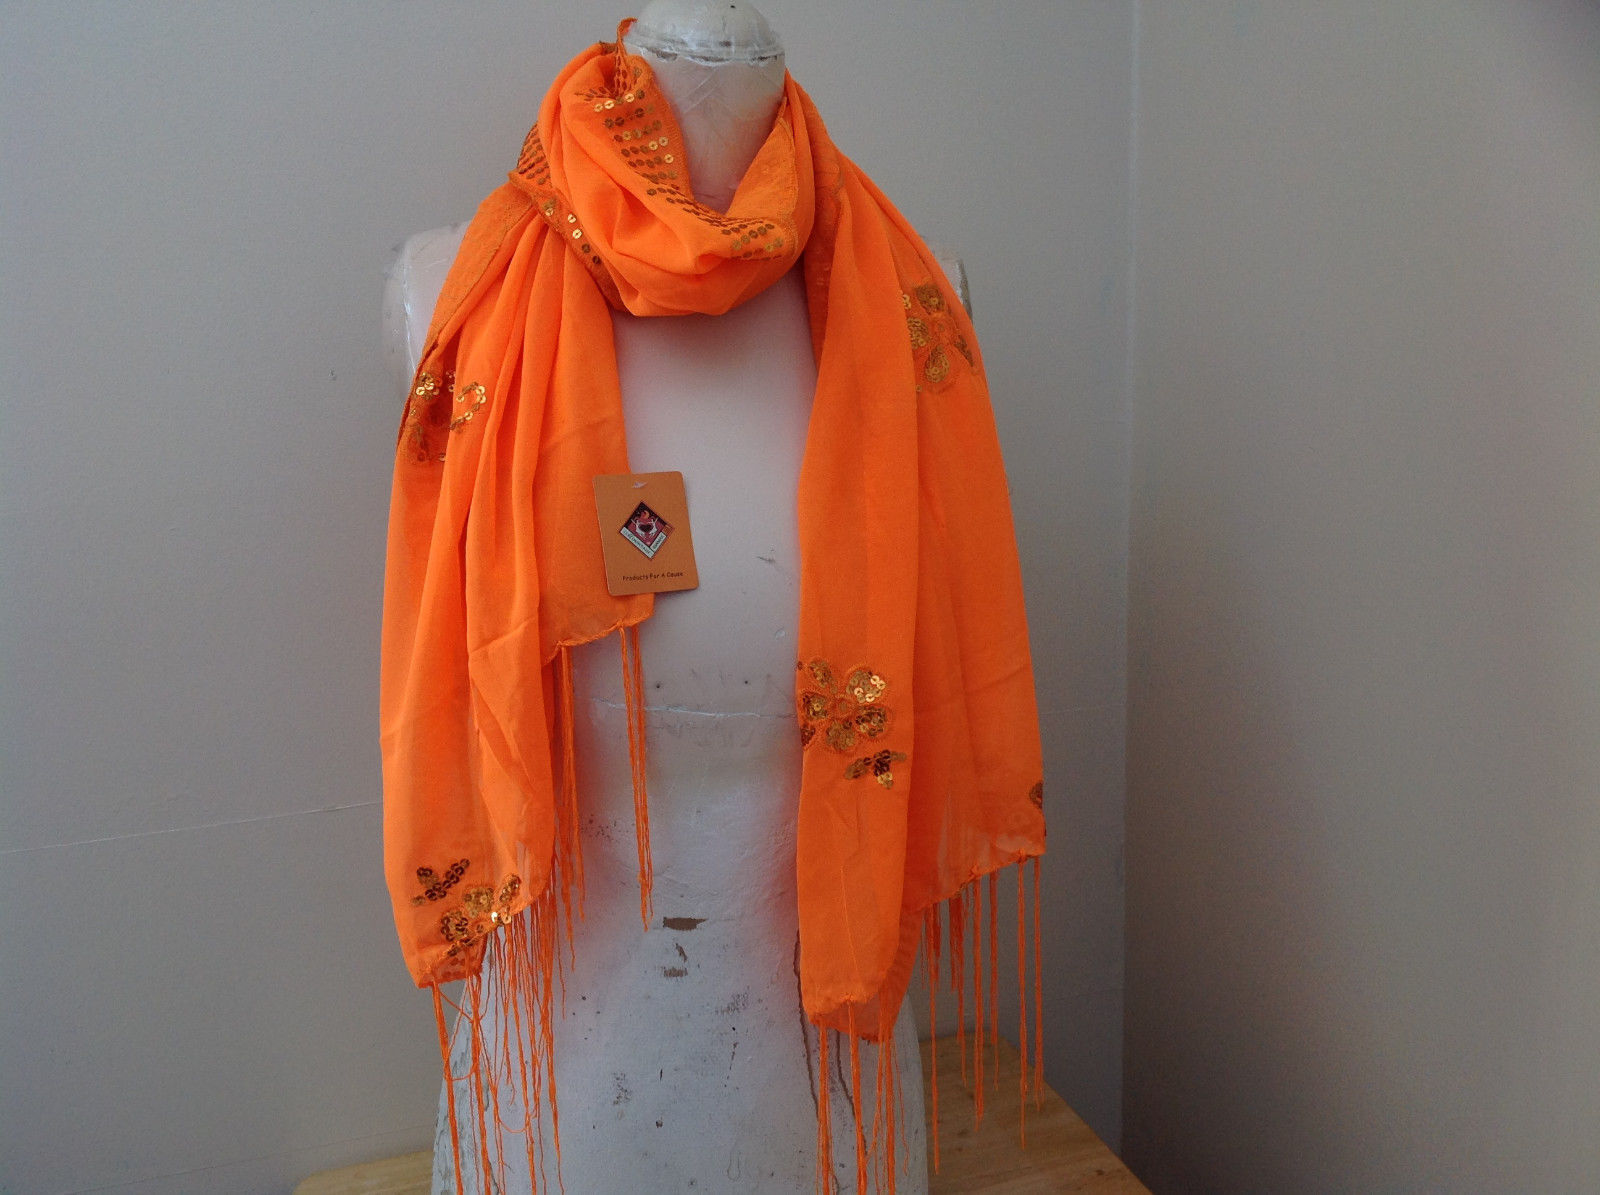 Neon Orange Sheer Scarf with Sequin Designs and Tassels Length 68 Inches